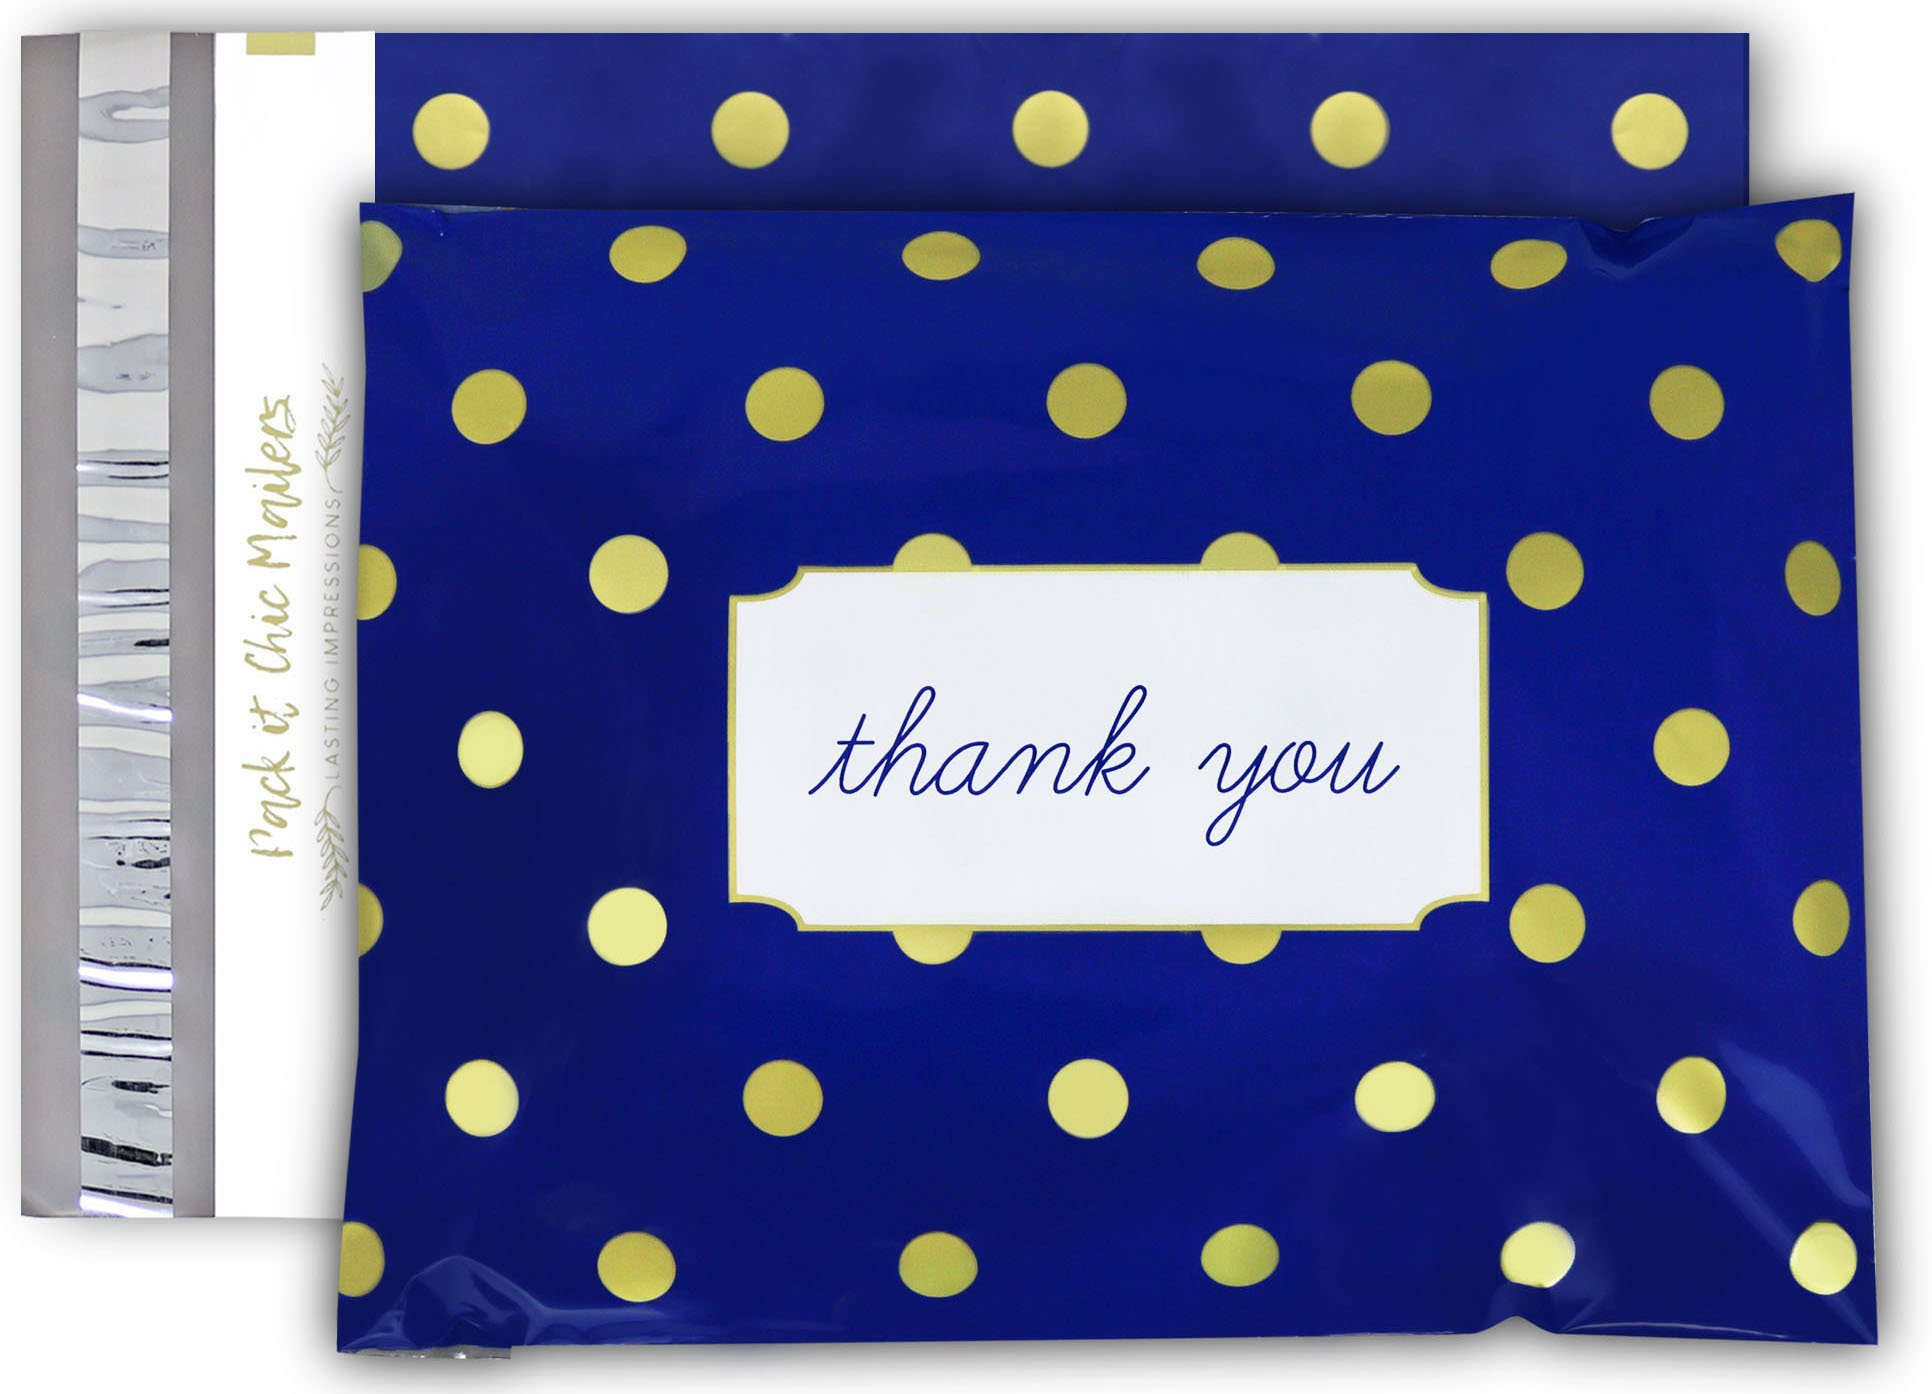 "[ 100-10"" X 13"" ] Navy Polka Dot - Thank You Design Custom Poly Mailer Envelope Shipping Bags, Tear Proof & Powerful Self Seal Adhesive Postal Bags (Other Designs Available) - Pack It Chic"